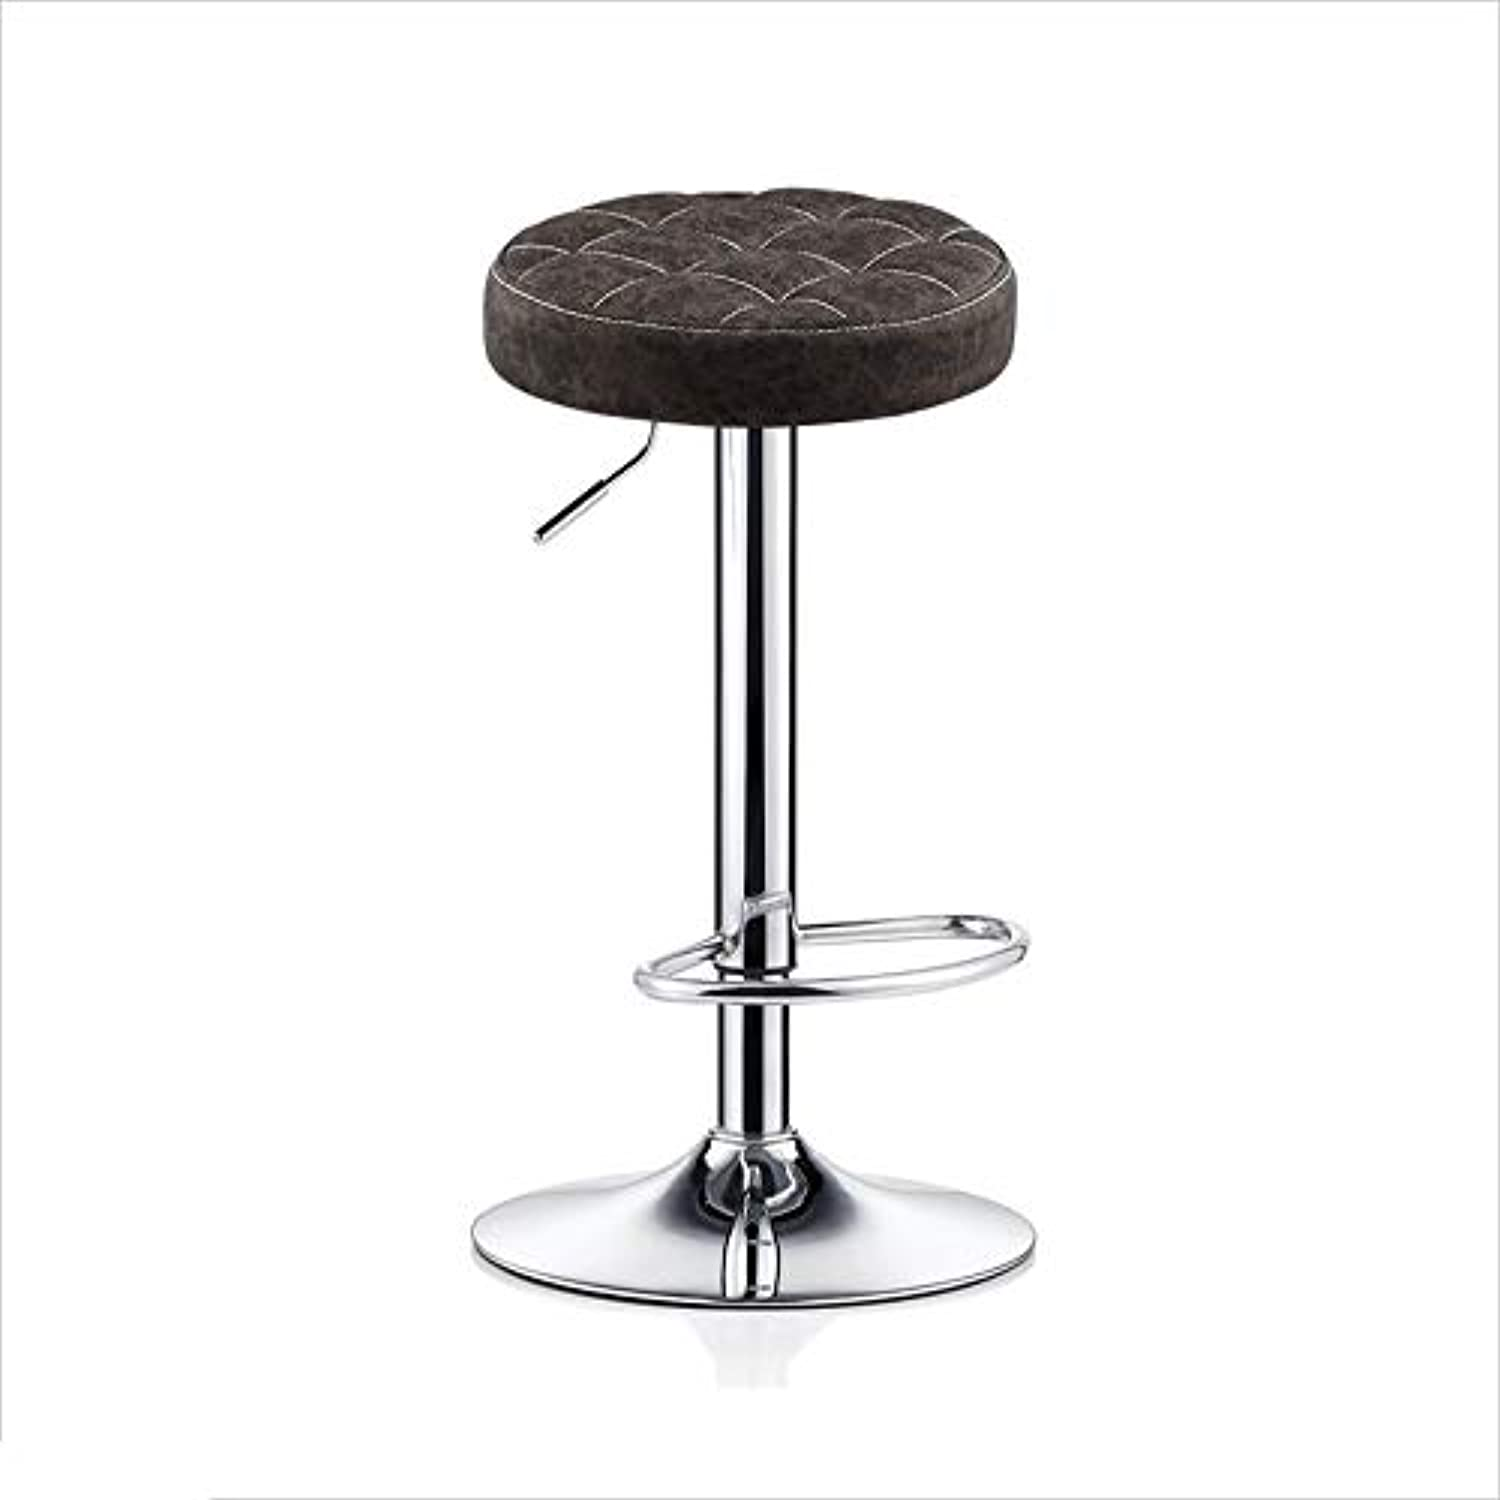 QZ HOME Bar Chair High Foot Stools redating Round Stools Bar Chair Soft and Comfortable Strong Load Bearing (color   Brown)